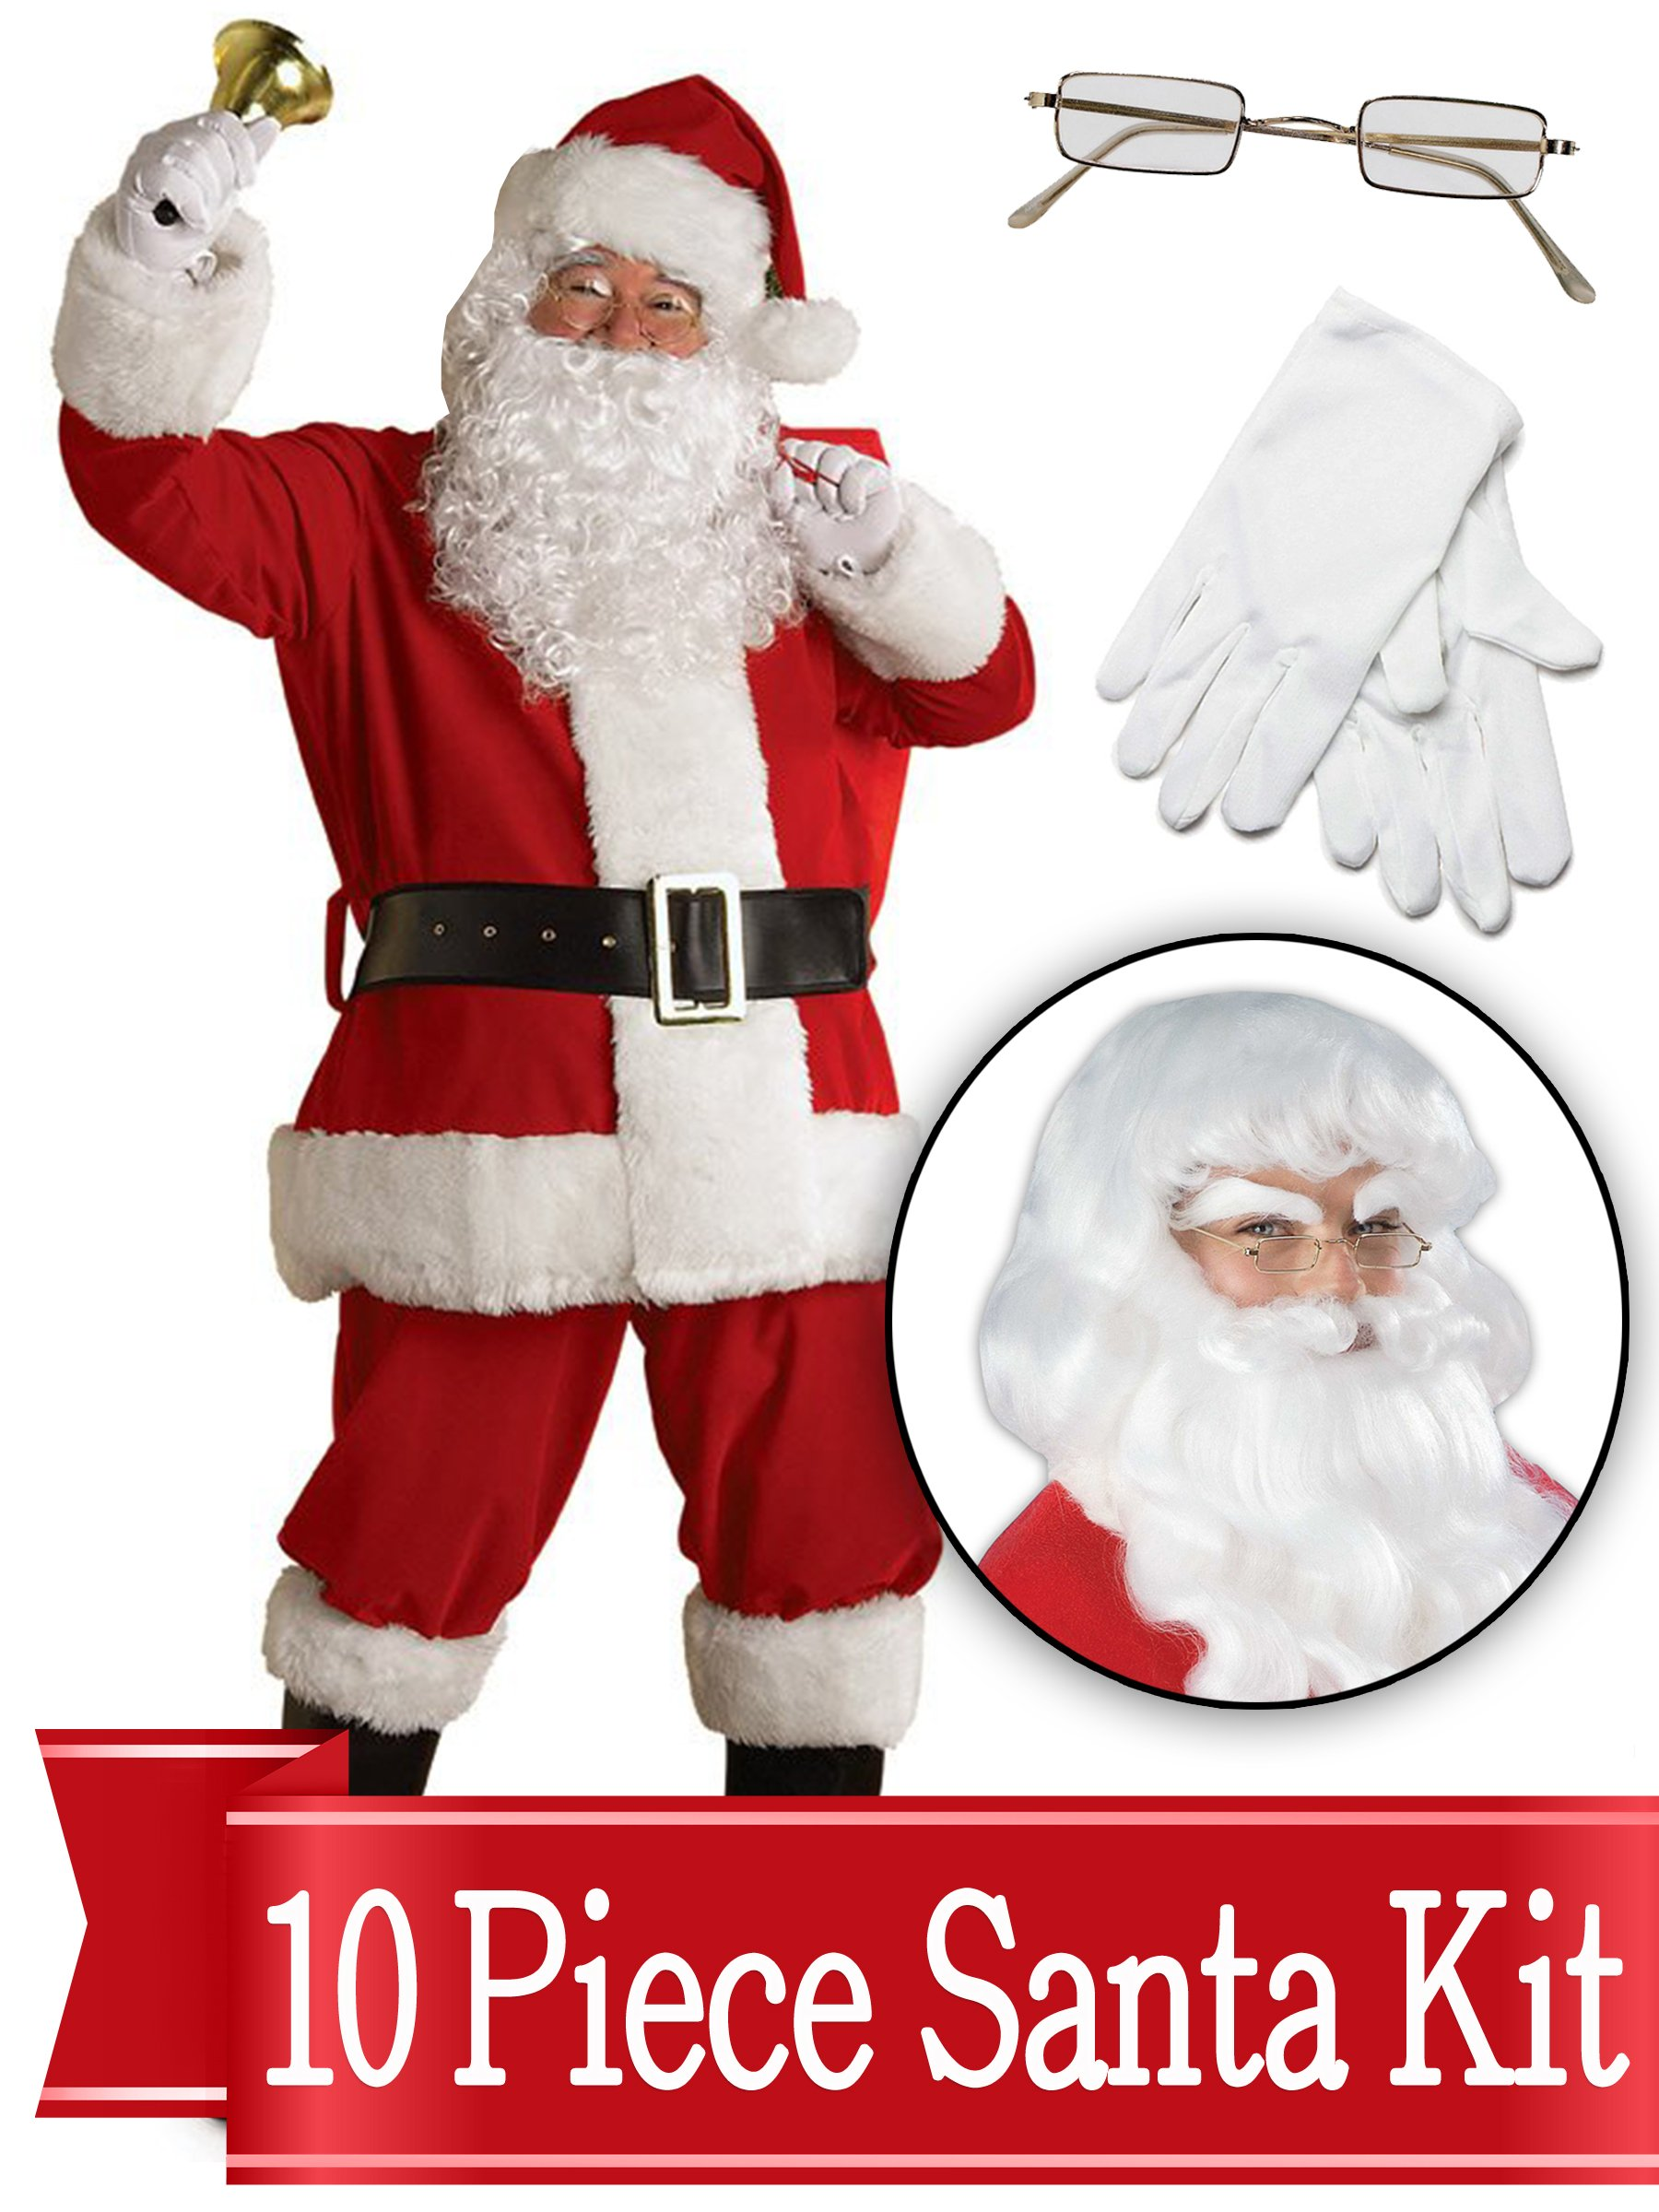 Santa Suit Complete Kit Red Ultra Velvet Deluxe Complete 10 Piece Kit - Santa Costume Outfit by BirthdayExpress